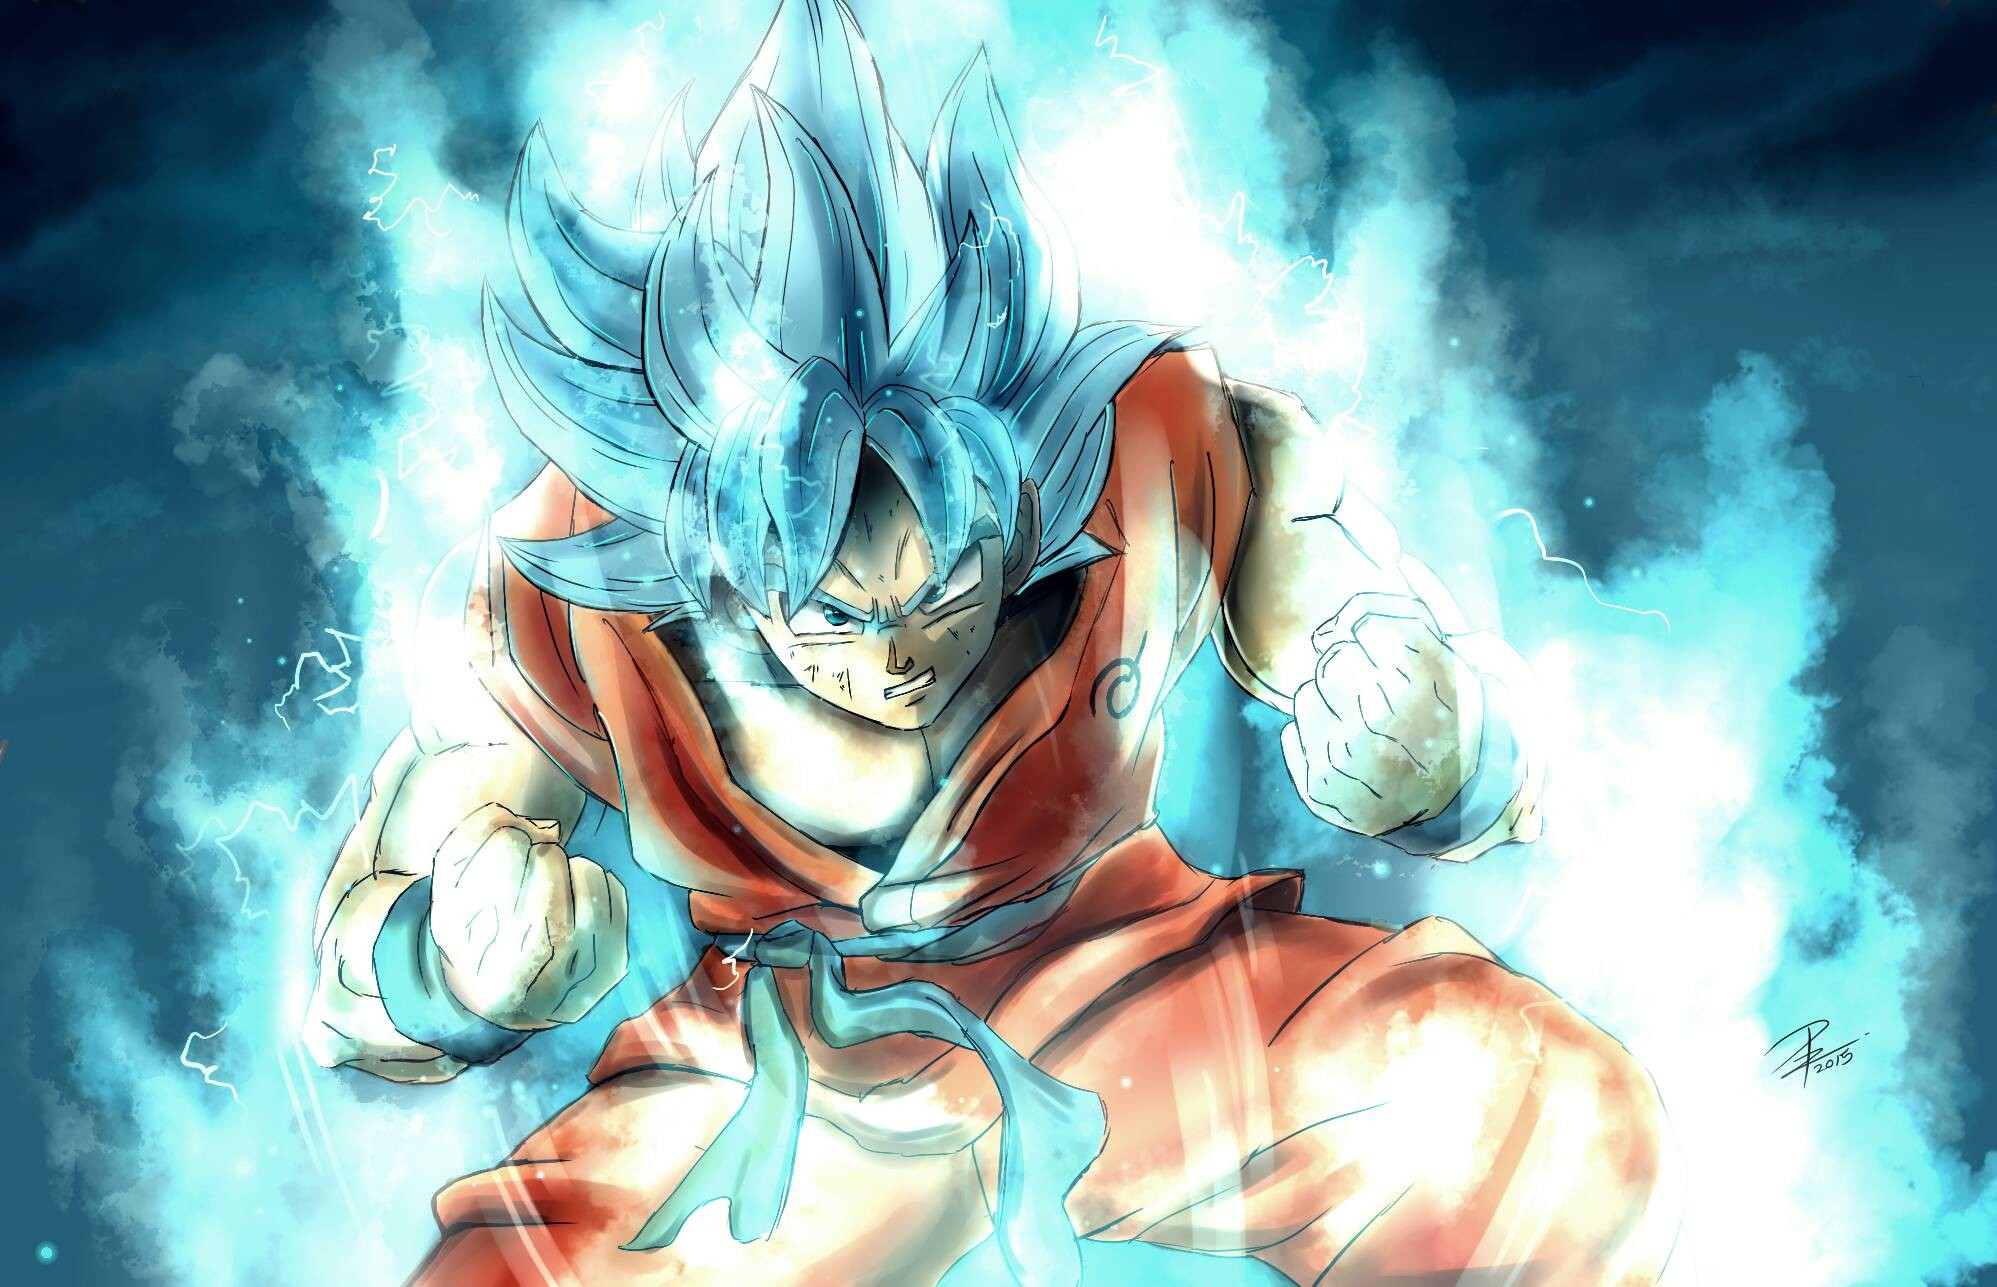 Goku Wallpaper ① Download Free Awesome Full Hd Backgrounds For